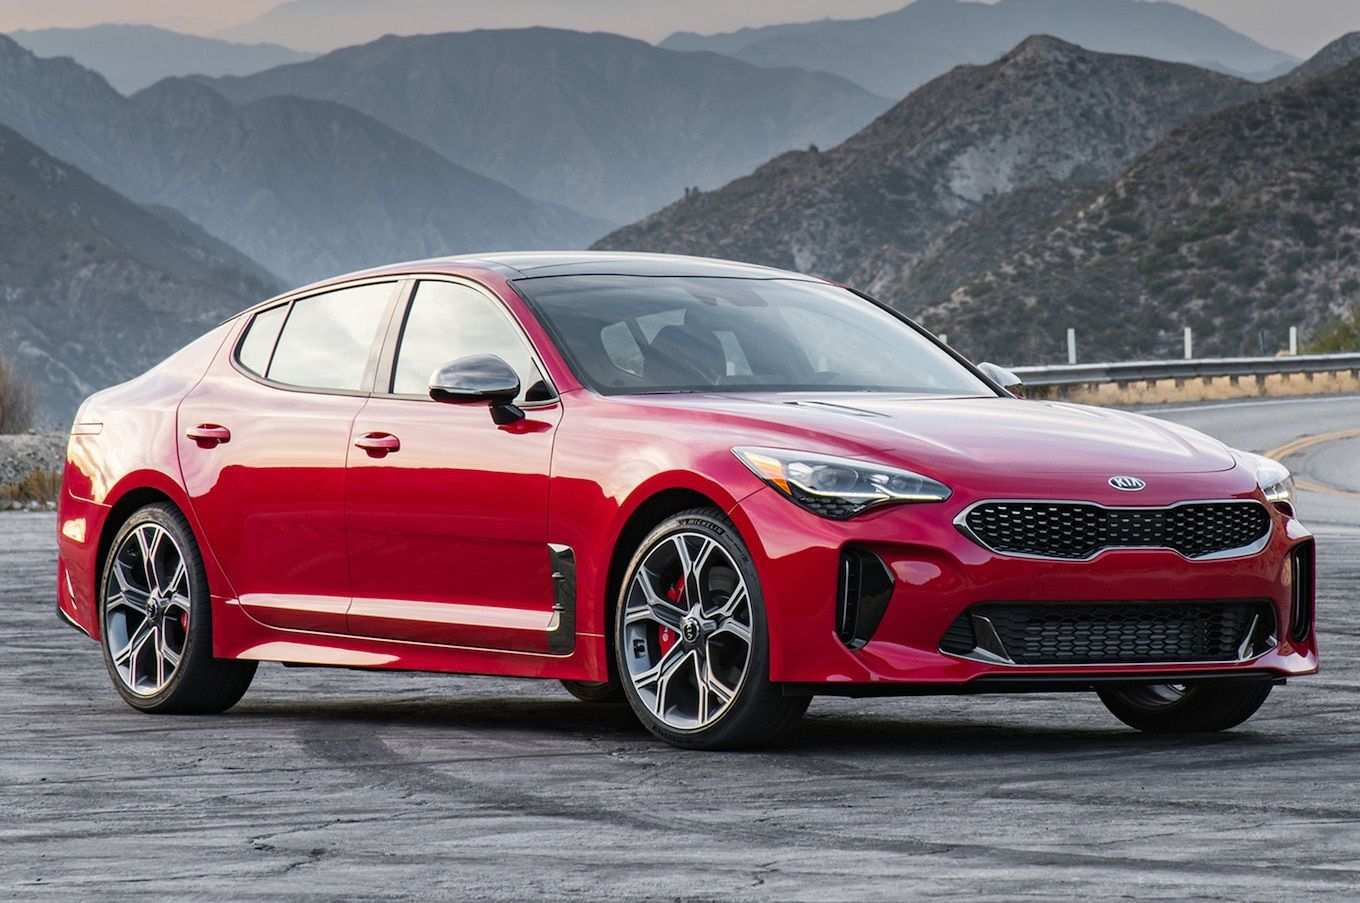 34 Best 2020 Kia Stinger Release Date Price Design And Review